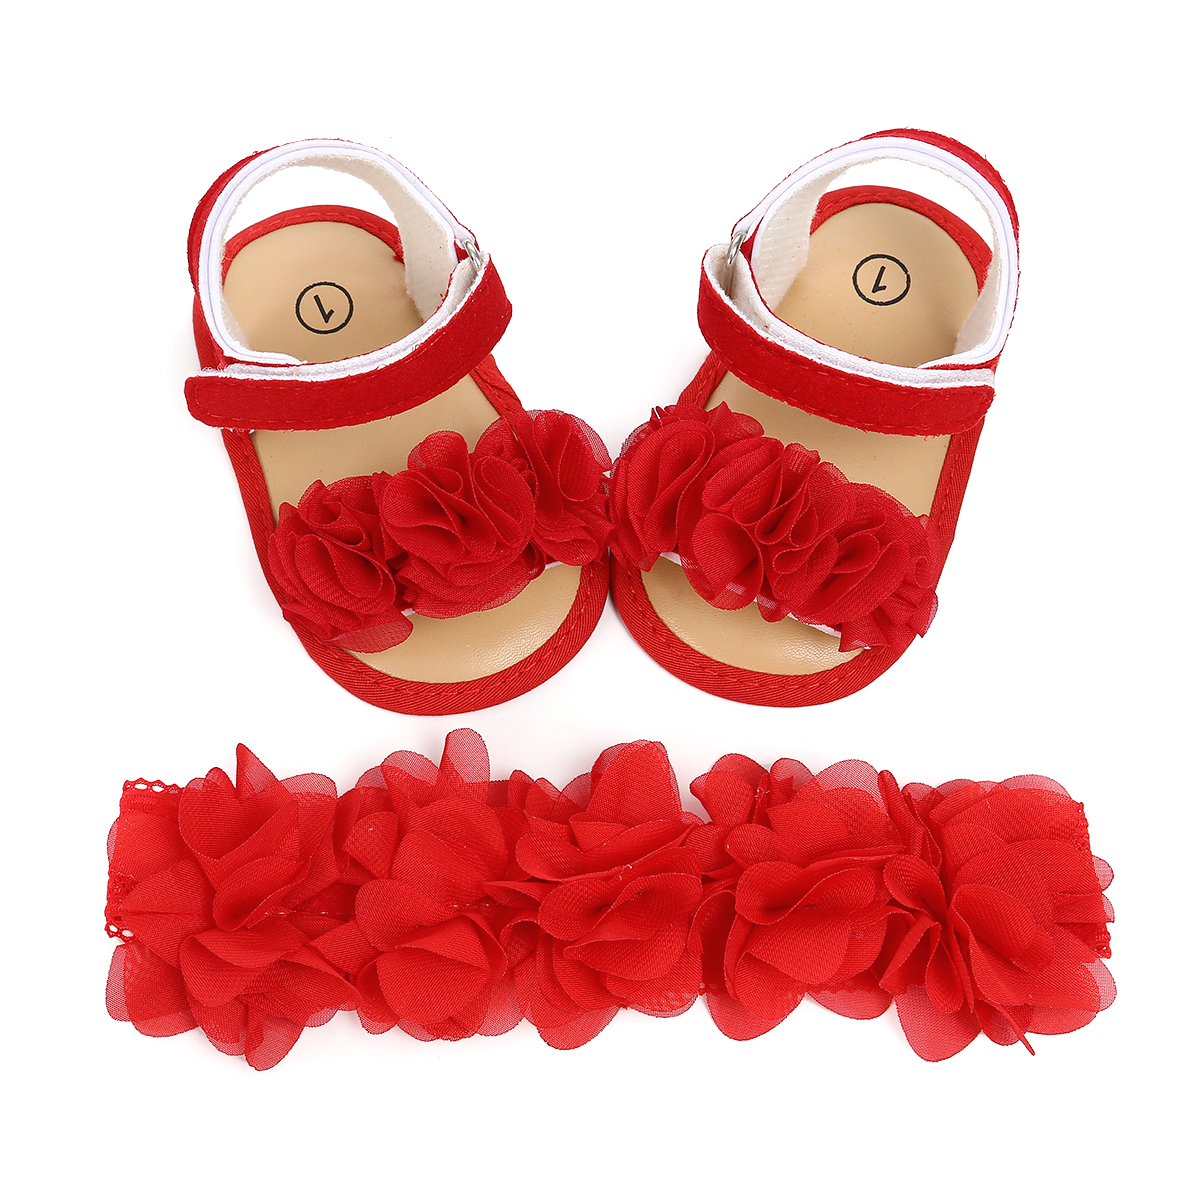 Newborn Kids Baby Girl Flower Sandals Casual Crib Shoes PU Leather First Prewalker + Headband Hair Bands Sheer White Pink Red